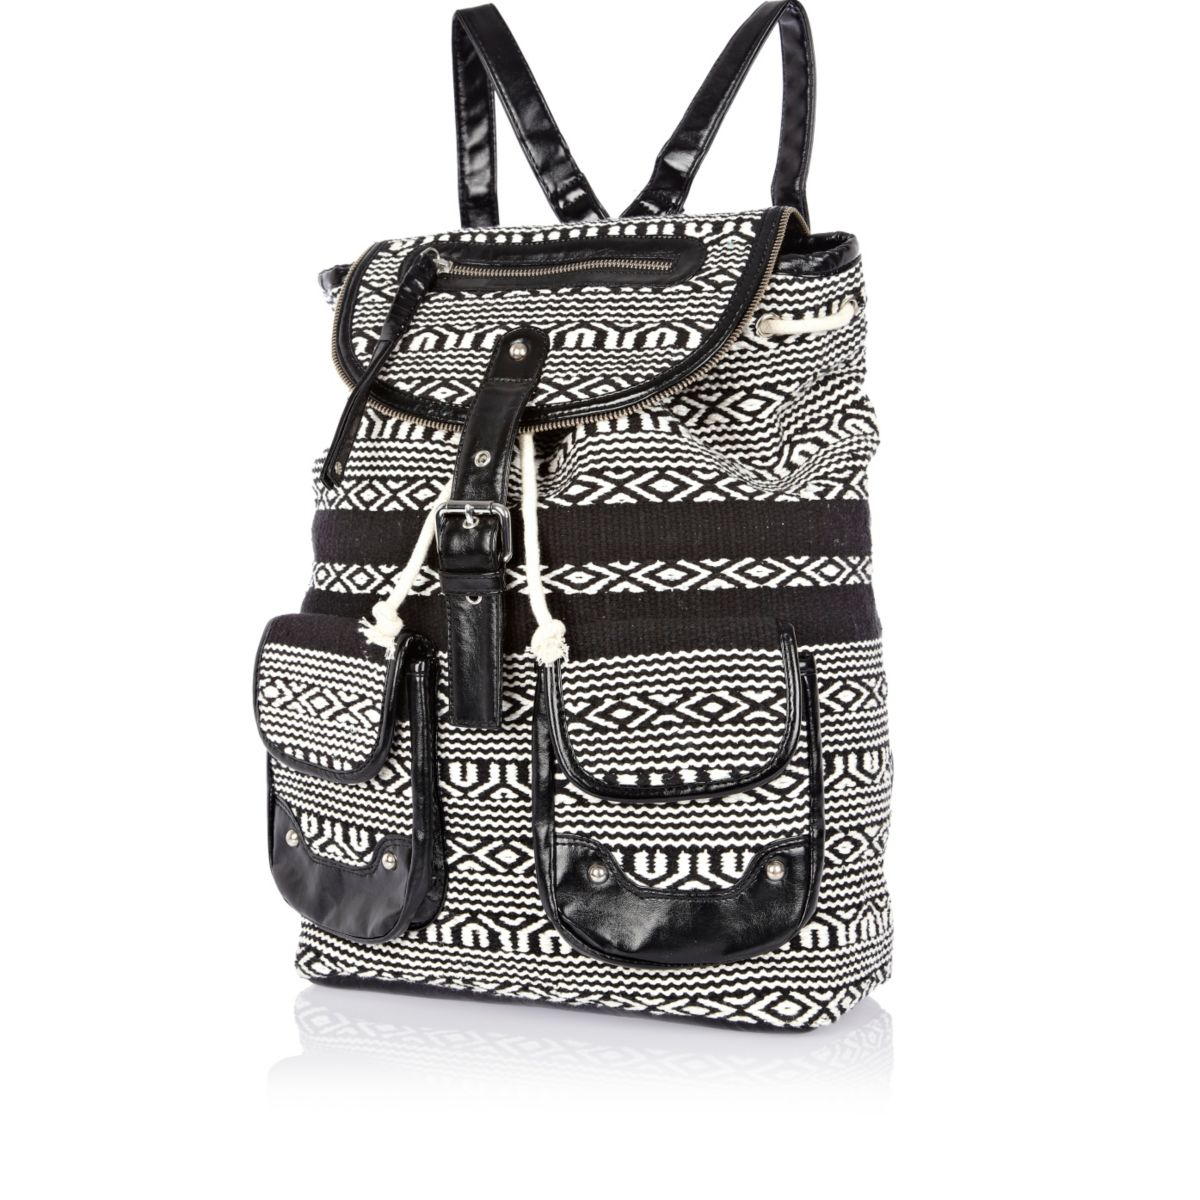 Black and white aztec woven backpack